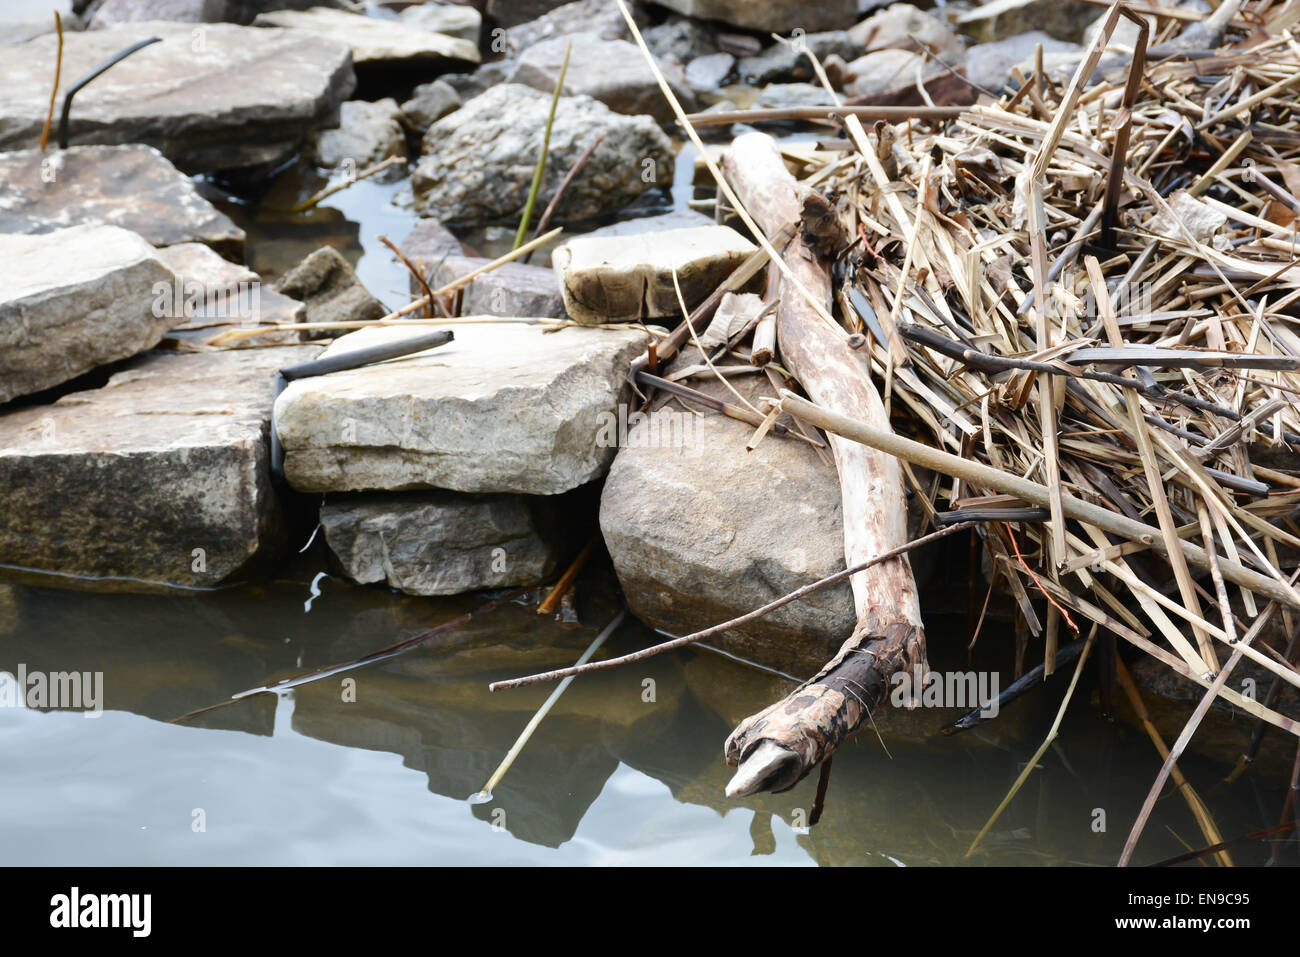 Winter Vegetation Washes Up on Lakeshore - Stock Image